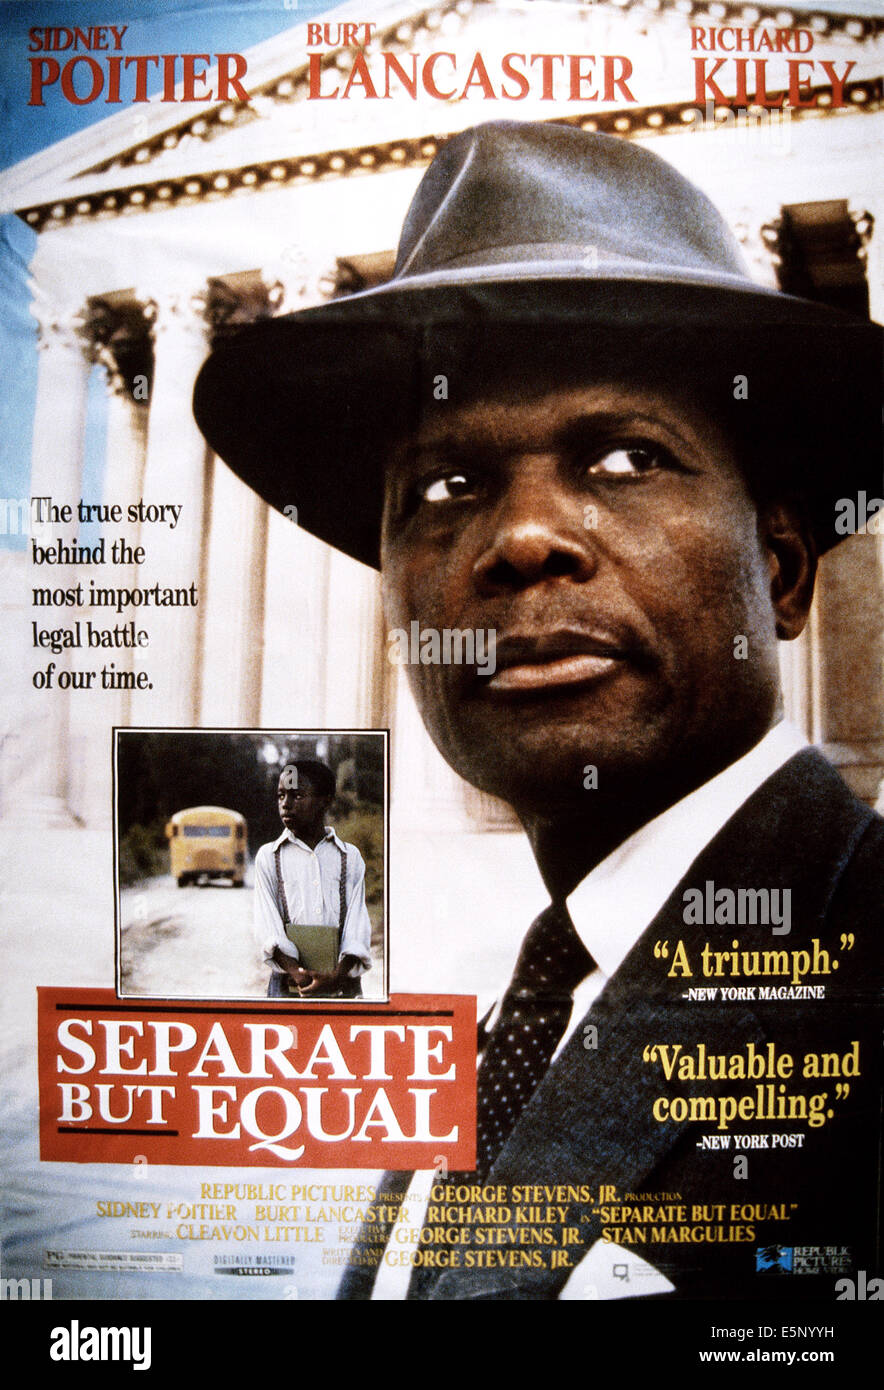 SEPARATE BUT EQUAL, US poster, Sidney Poitier as Thurgood Marshall (right), 1991, © ABC/courtesy Everett Collection - Stock Image